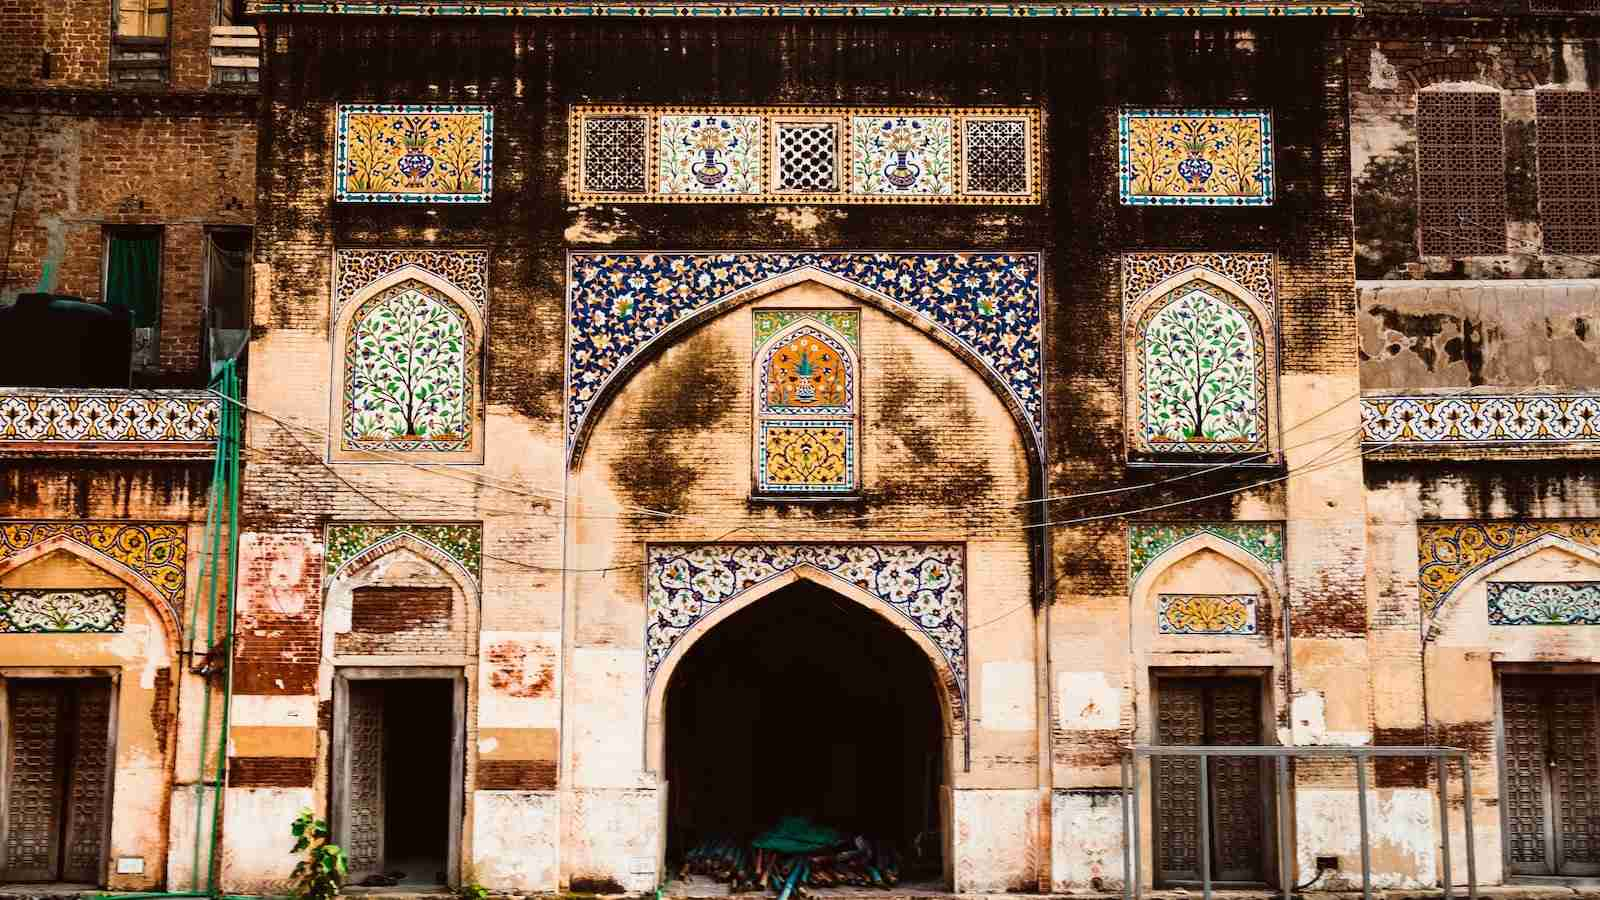 Pakistan features some stunning natural beauty along with gorgeous cities like Lahore